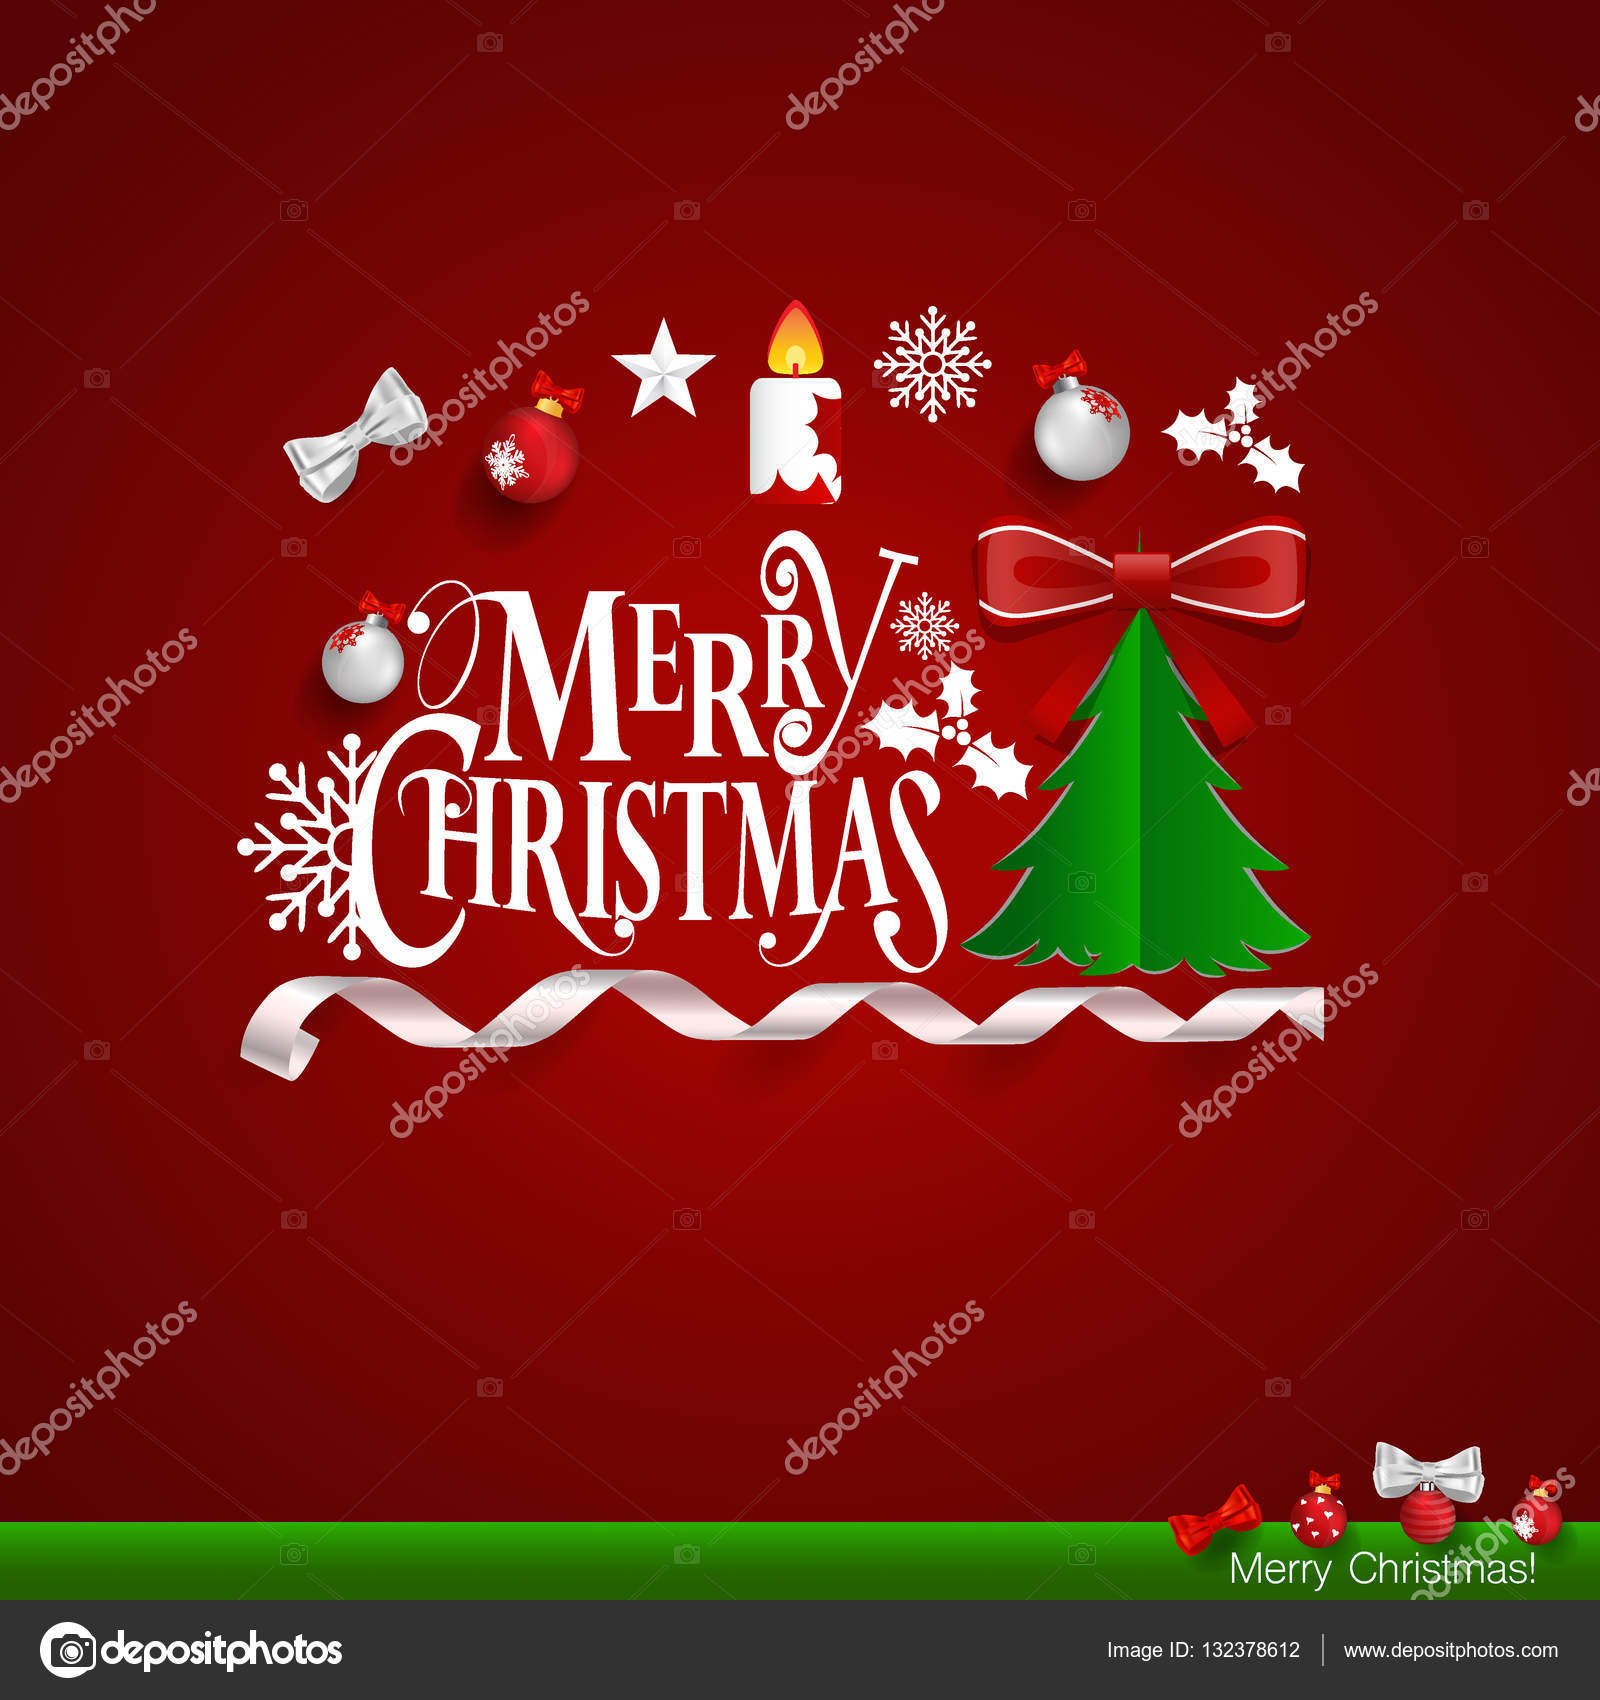 Christmas Greeting Card. Merry Christmas lettering with Christma ...